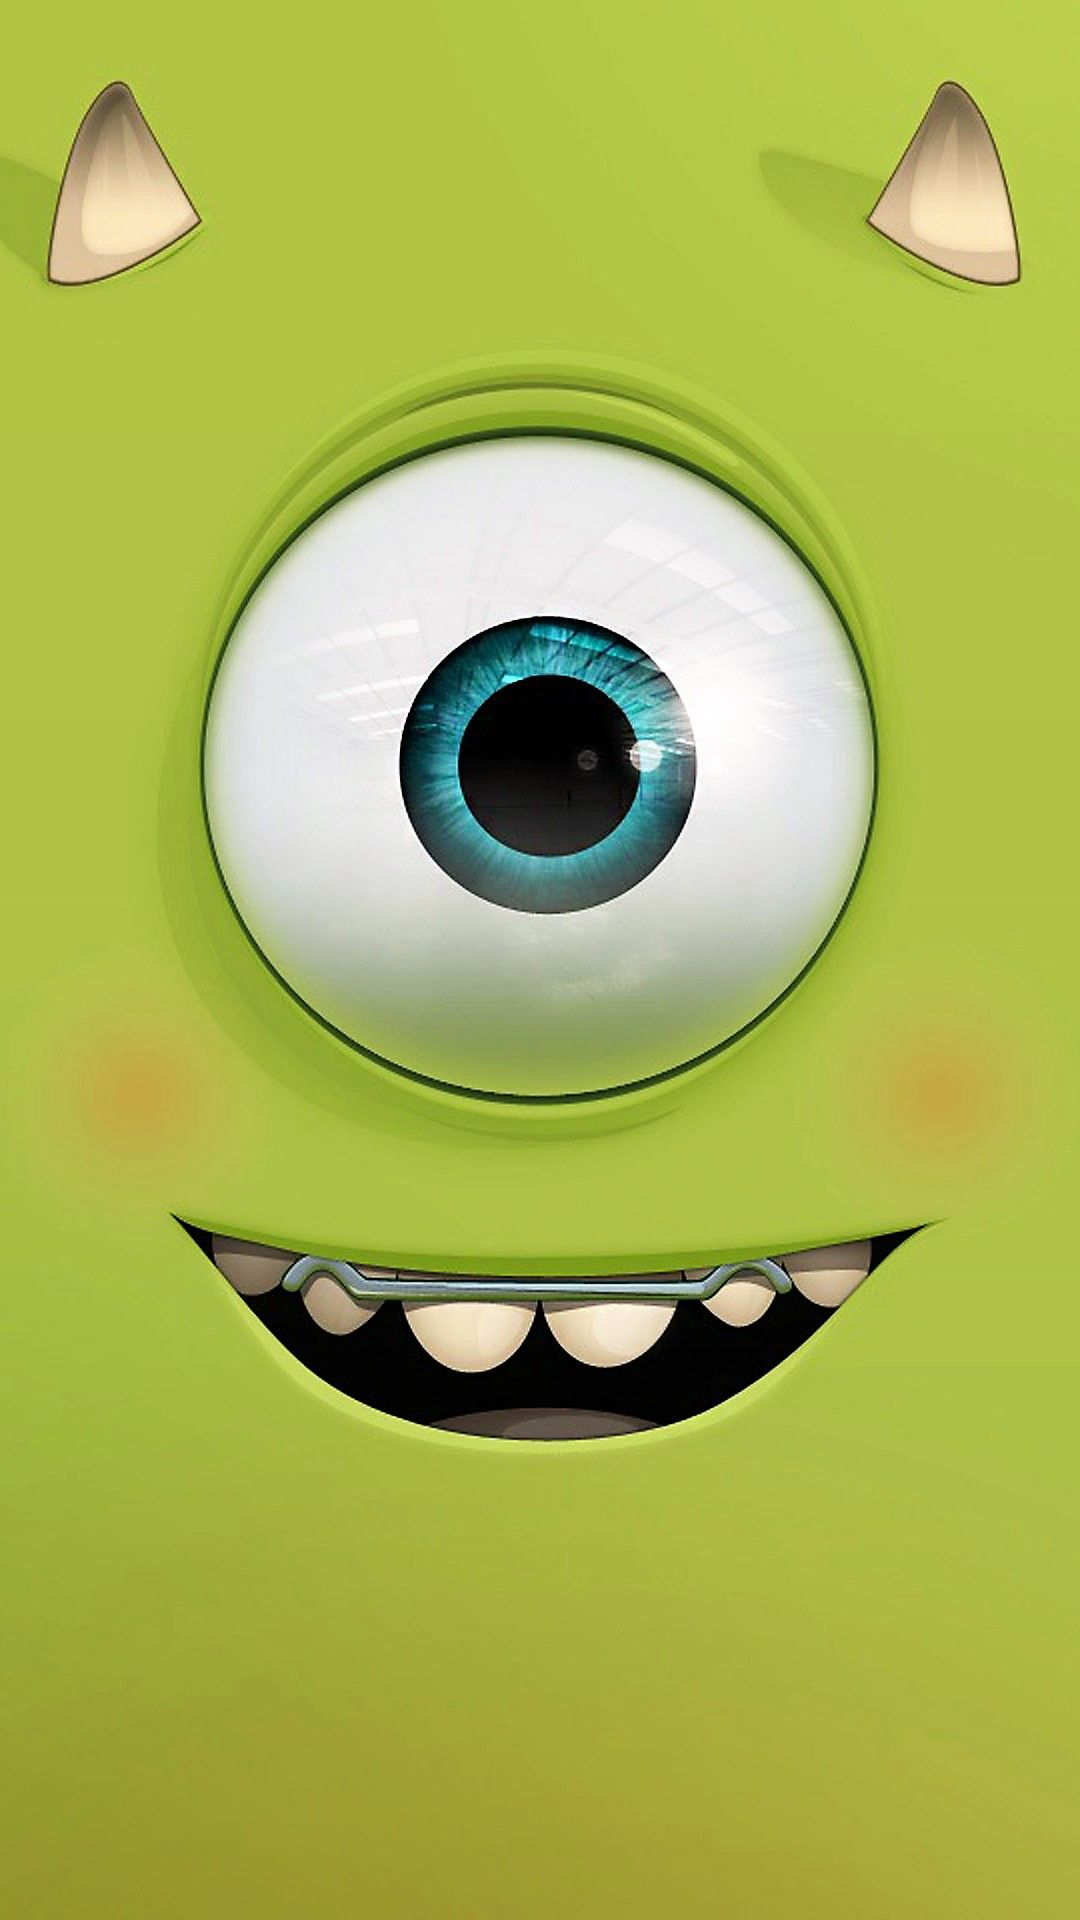 Funny Inc Monsters Tap To See More Of The Cutest Cartoon Characters Wallpapers Mobile9 Disney Wallpaper Cartoon Wallpaper Spongebob Wallpaper